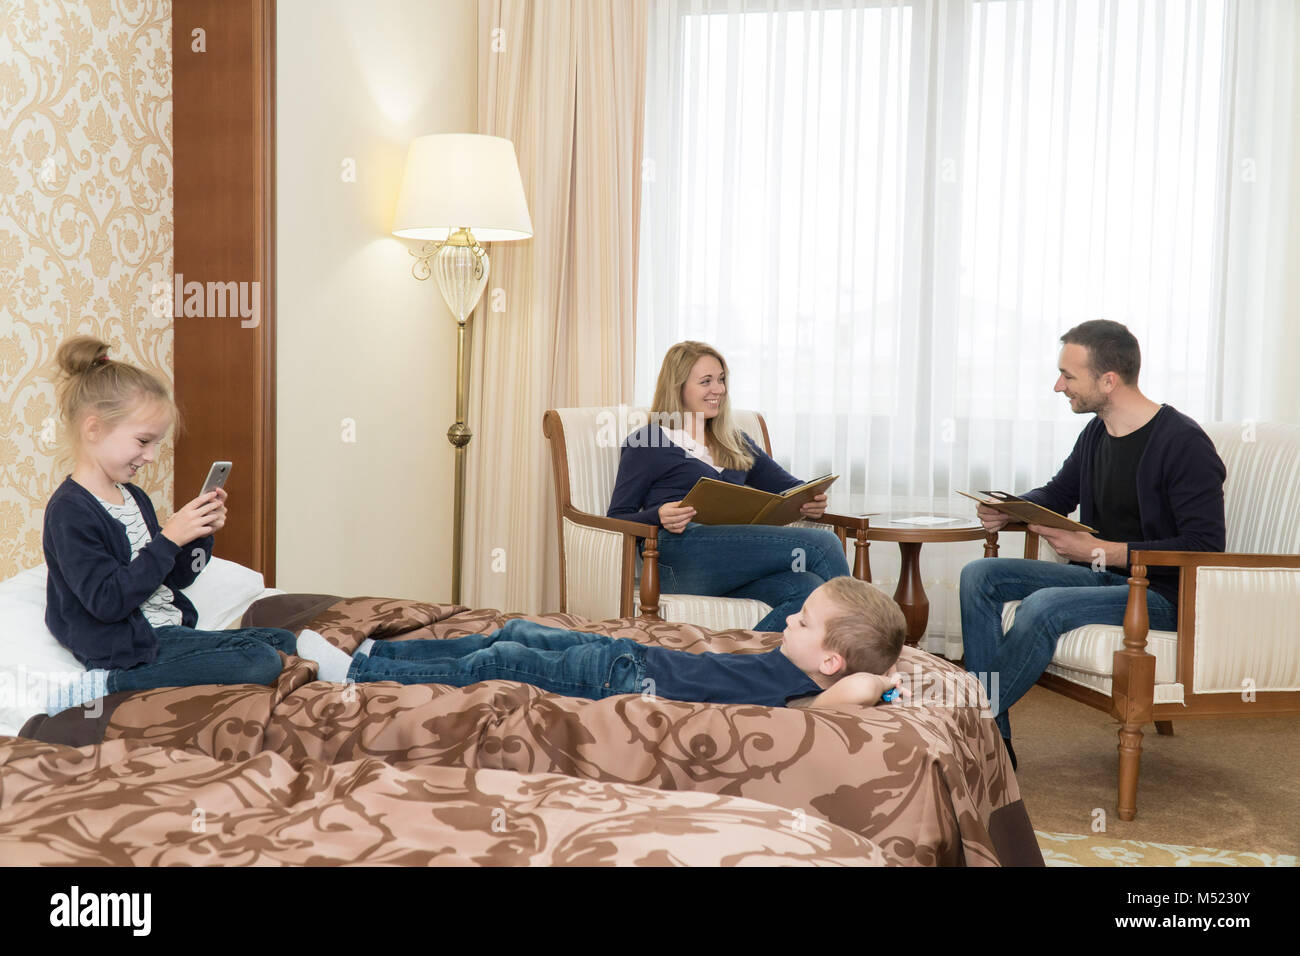 The Husband And Wife And The Children In The Hotel Room A